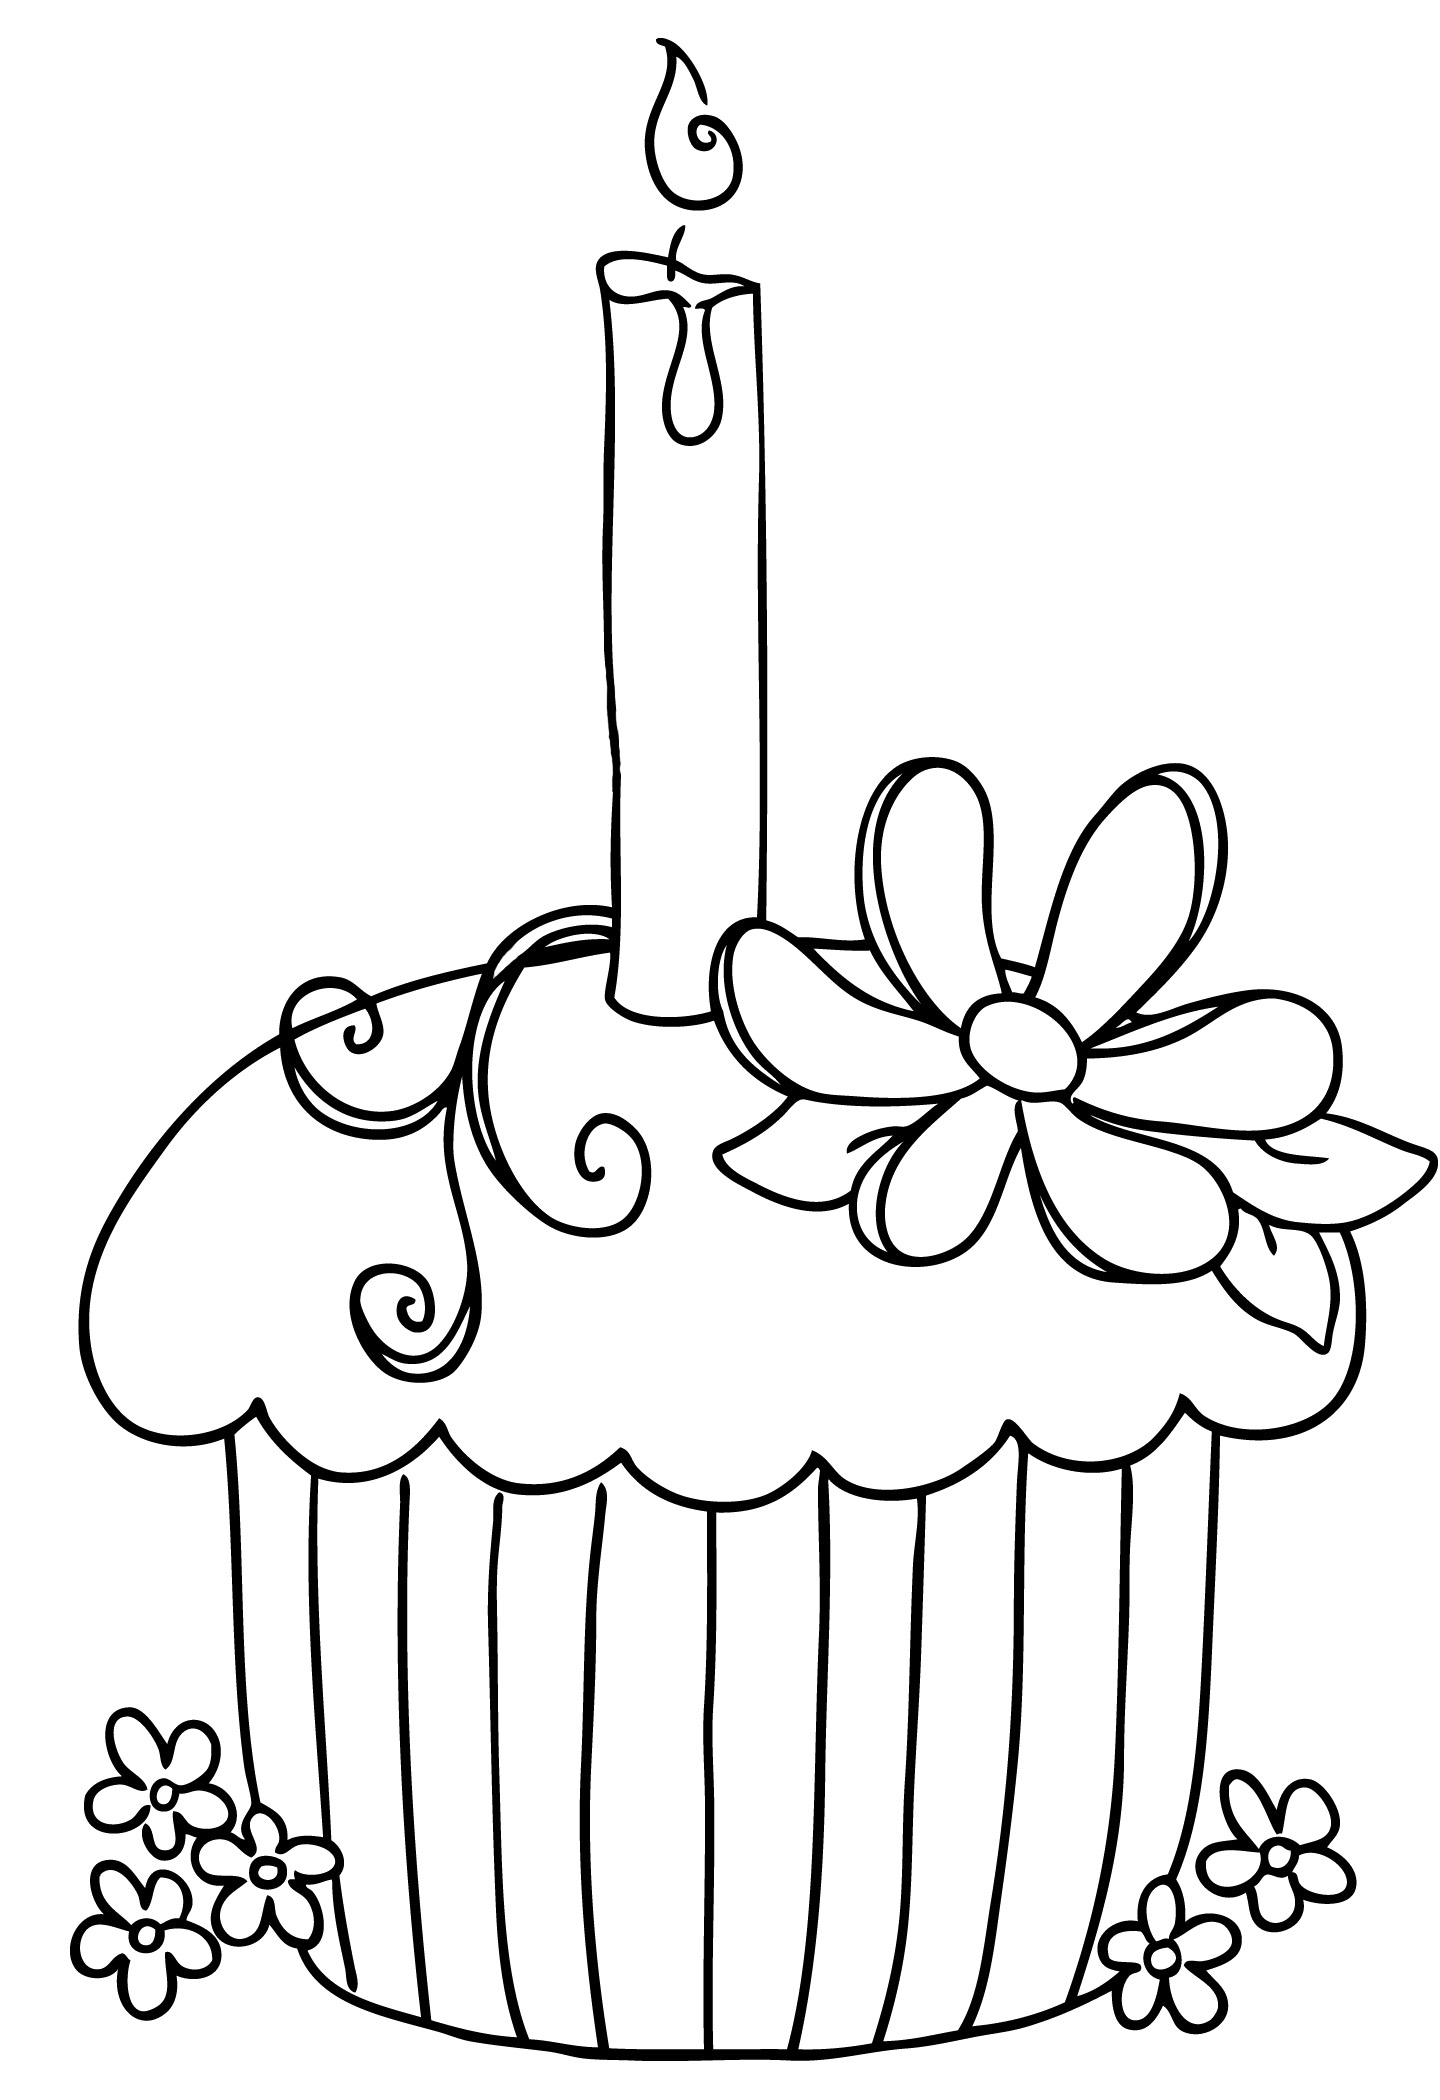 Happy birthday  black and white birthday black and white birthday clip art 9